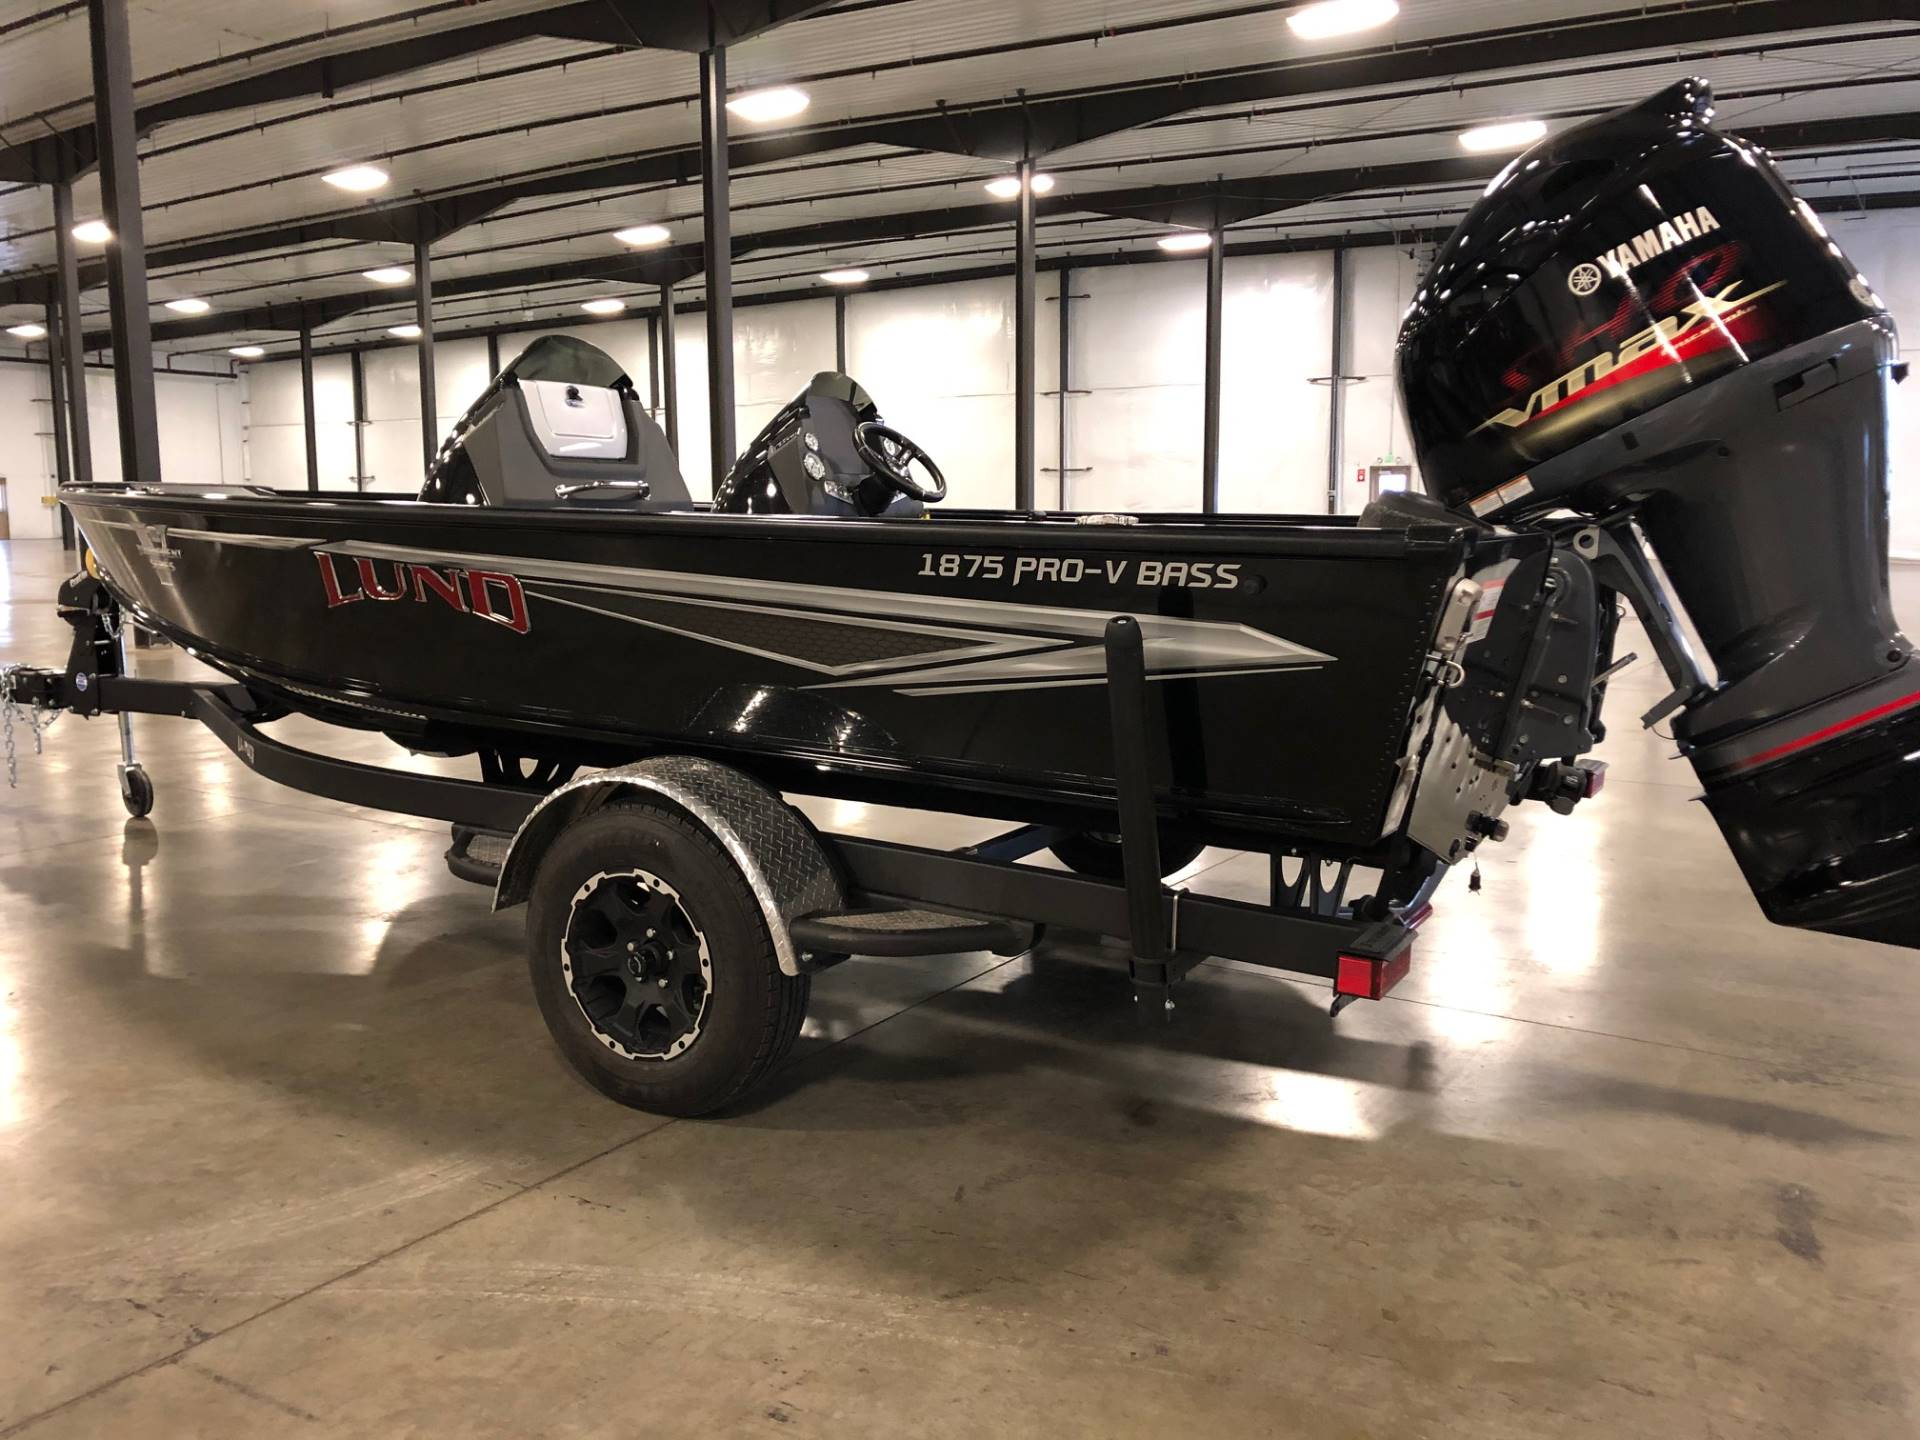 2020 Lund 1875 Pro V Bass XS in Albert Lea, Minnesota - Photo 2